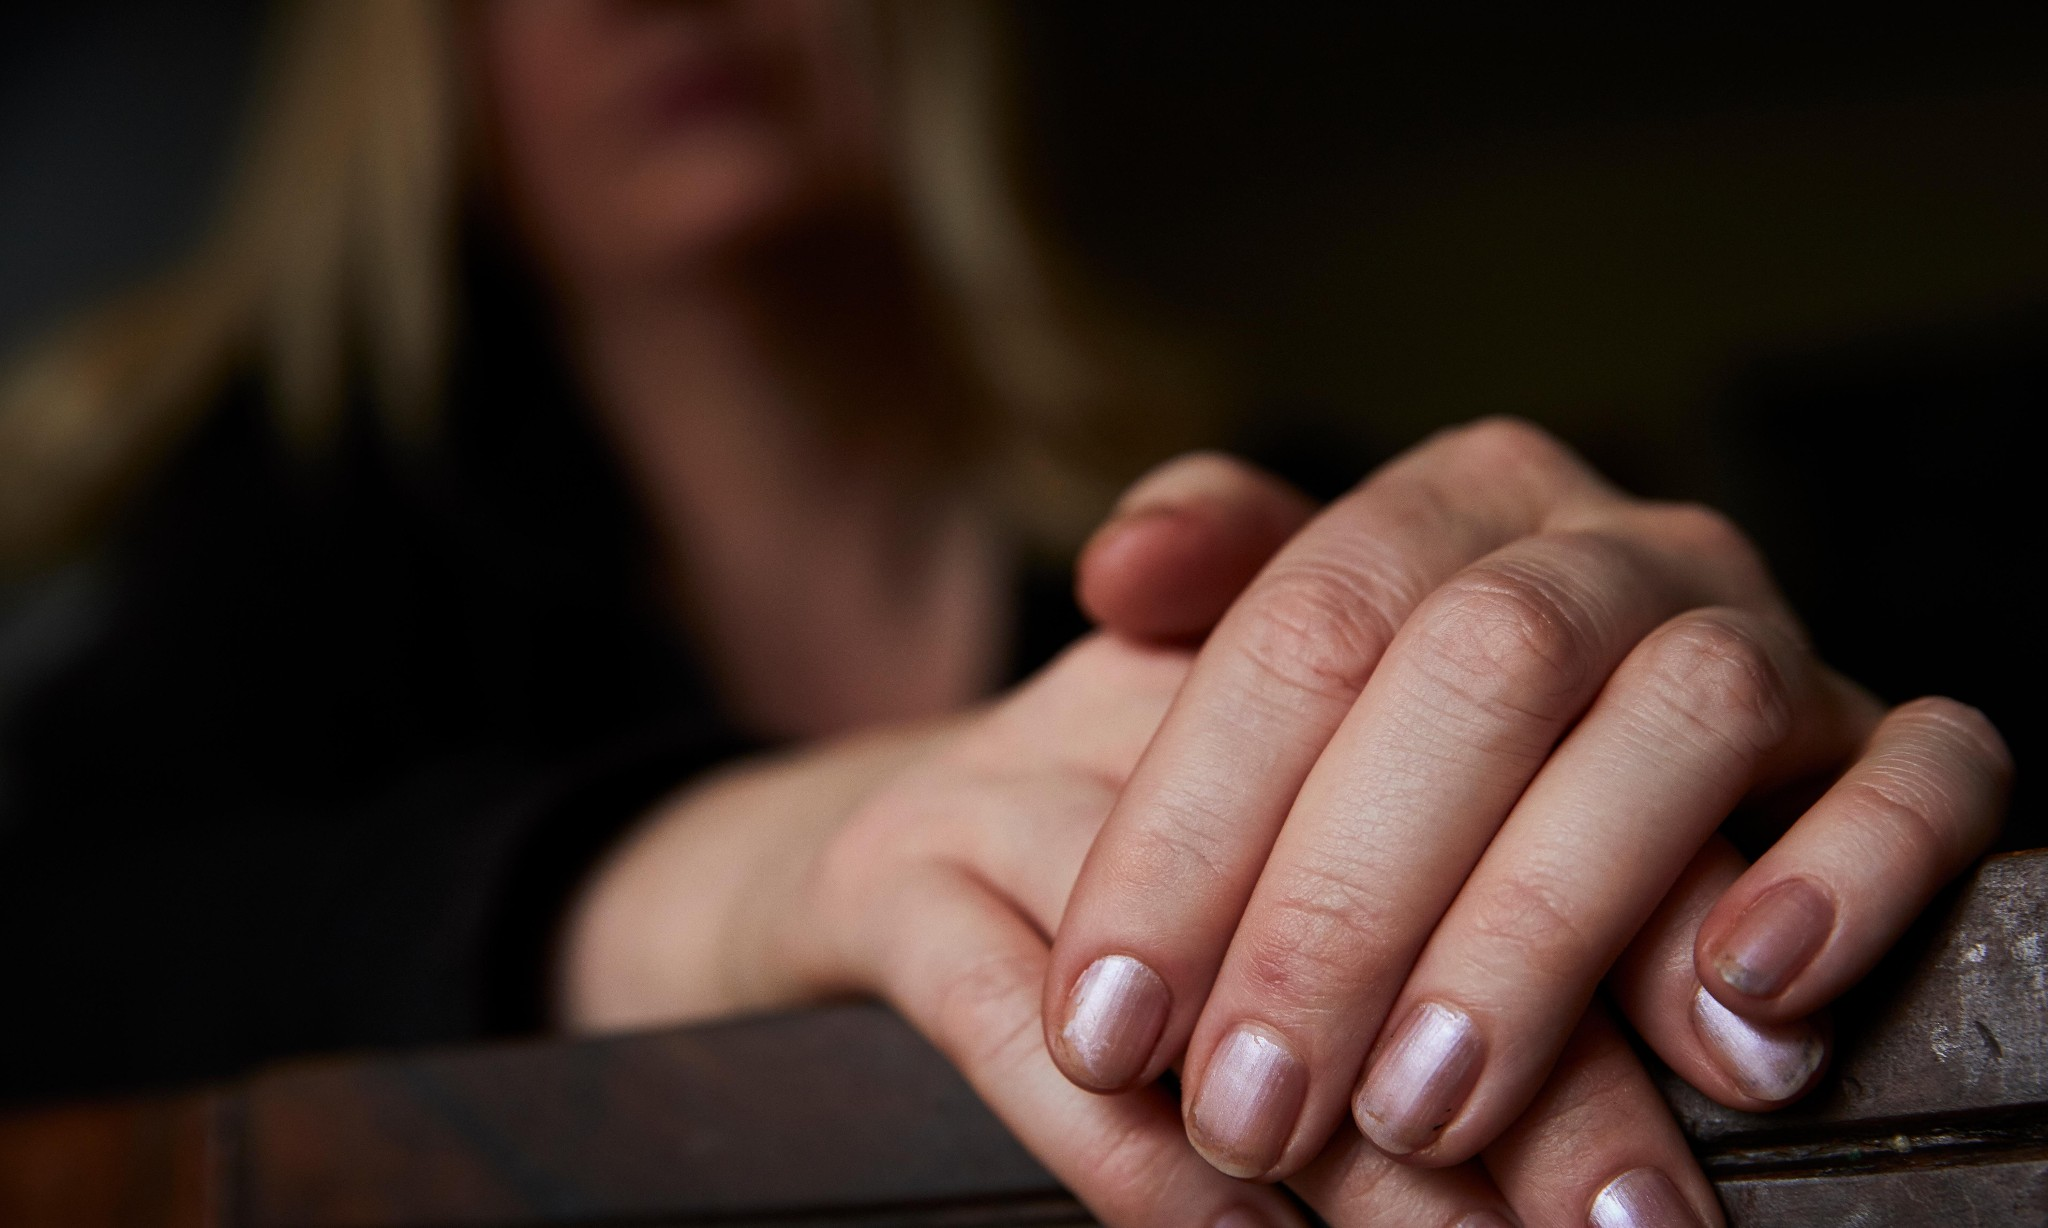 Family courts chief backs end to abusers cross-examining their victims